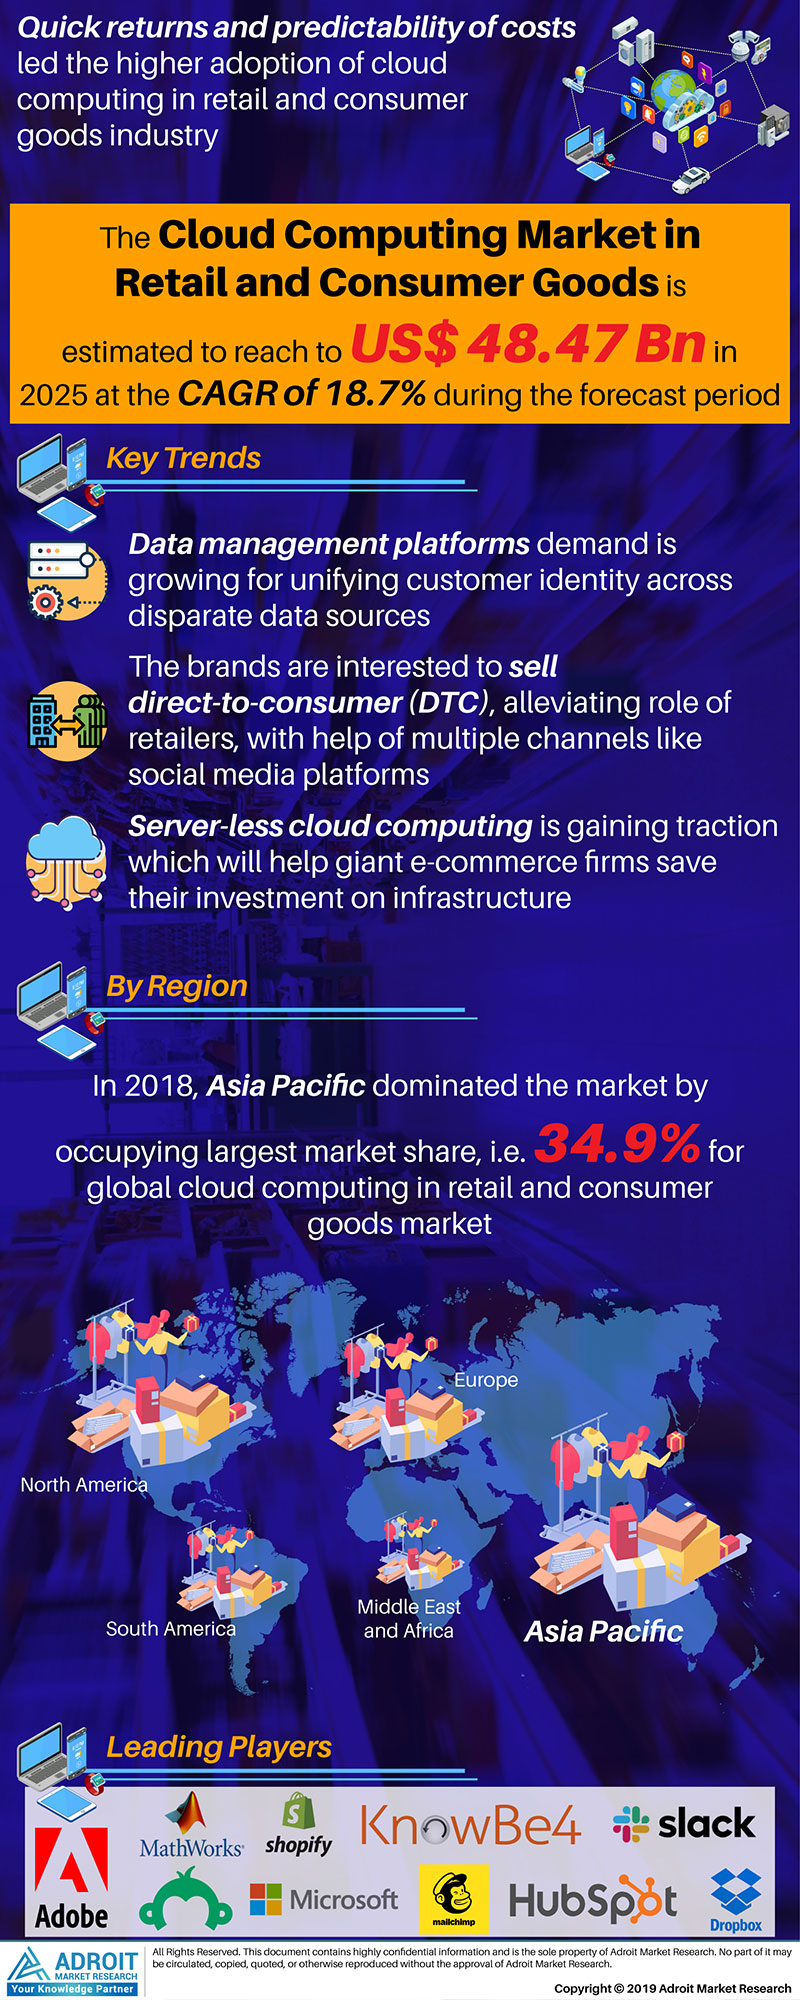 Global Cloud Computing in Retail and Consumer Goods Market Size 2017 By Region and Forecast 2019 to 2025